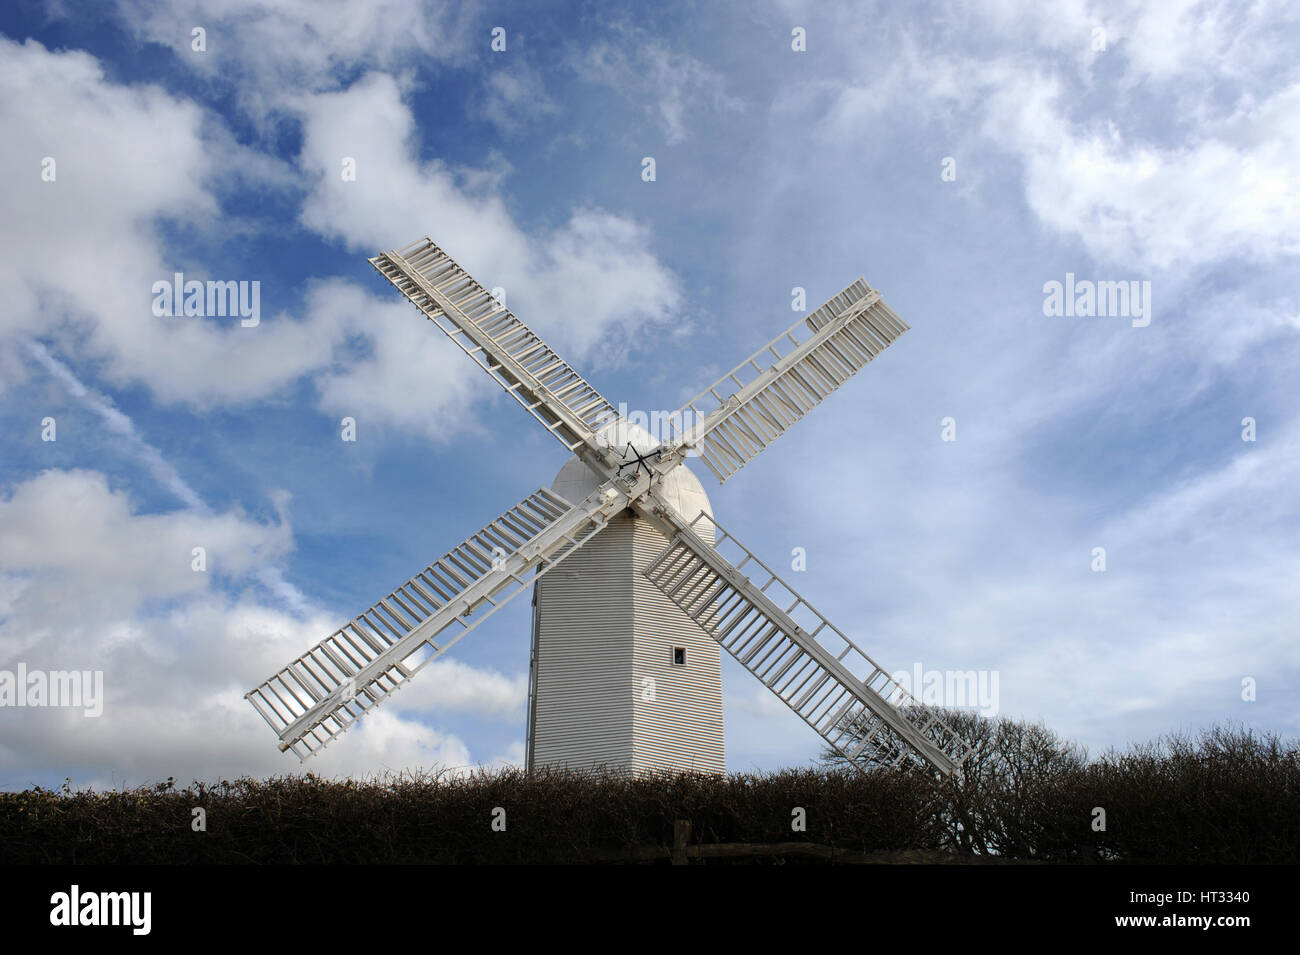 The Jill windmill at Clayton, West Sussex, England UK. This fully restored 19th-century windmill is located in the - Stock Image